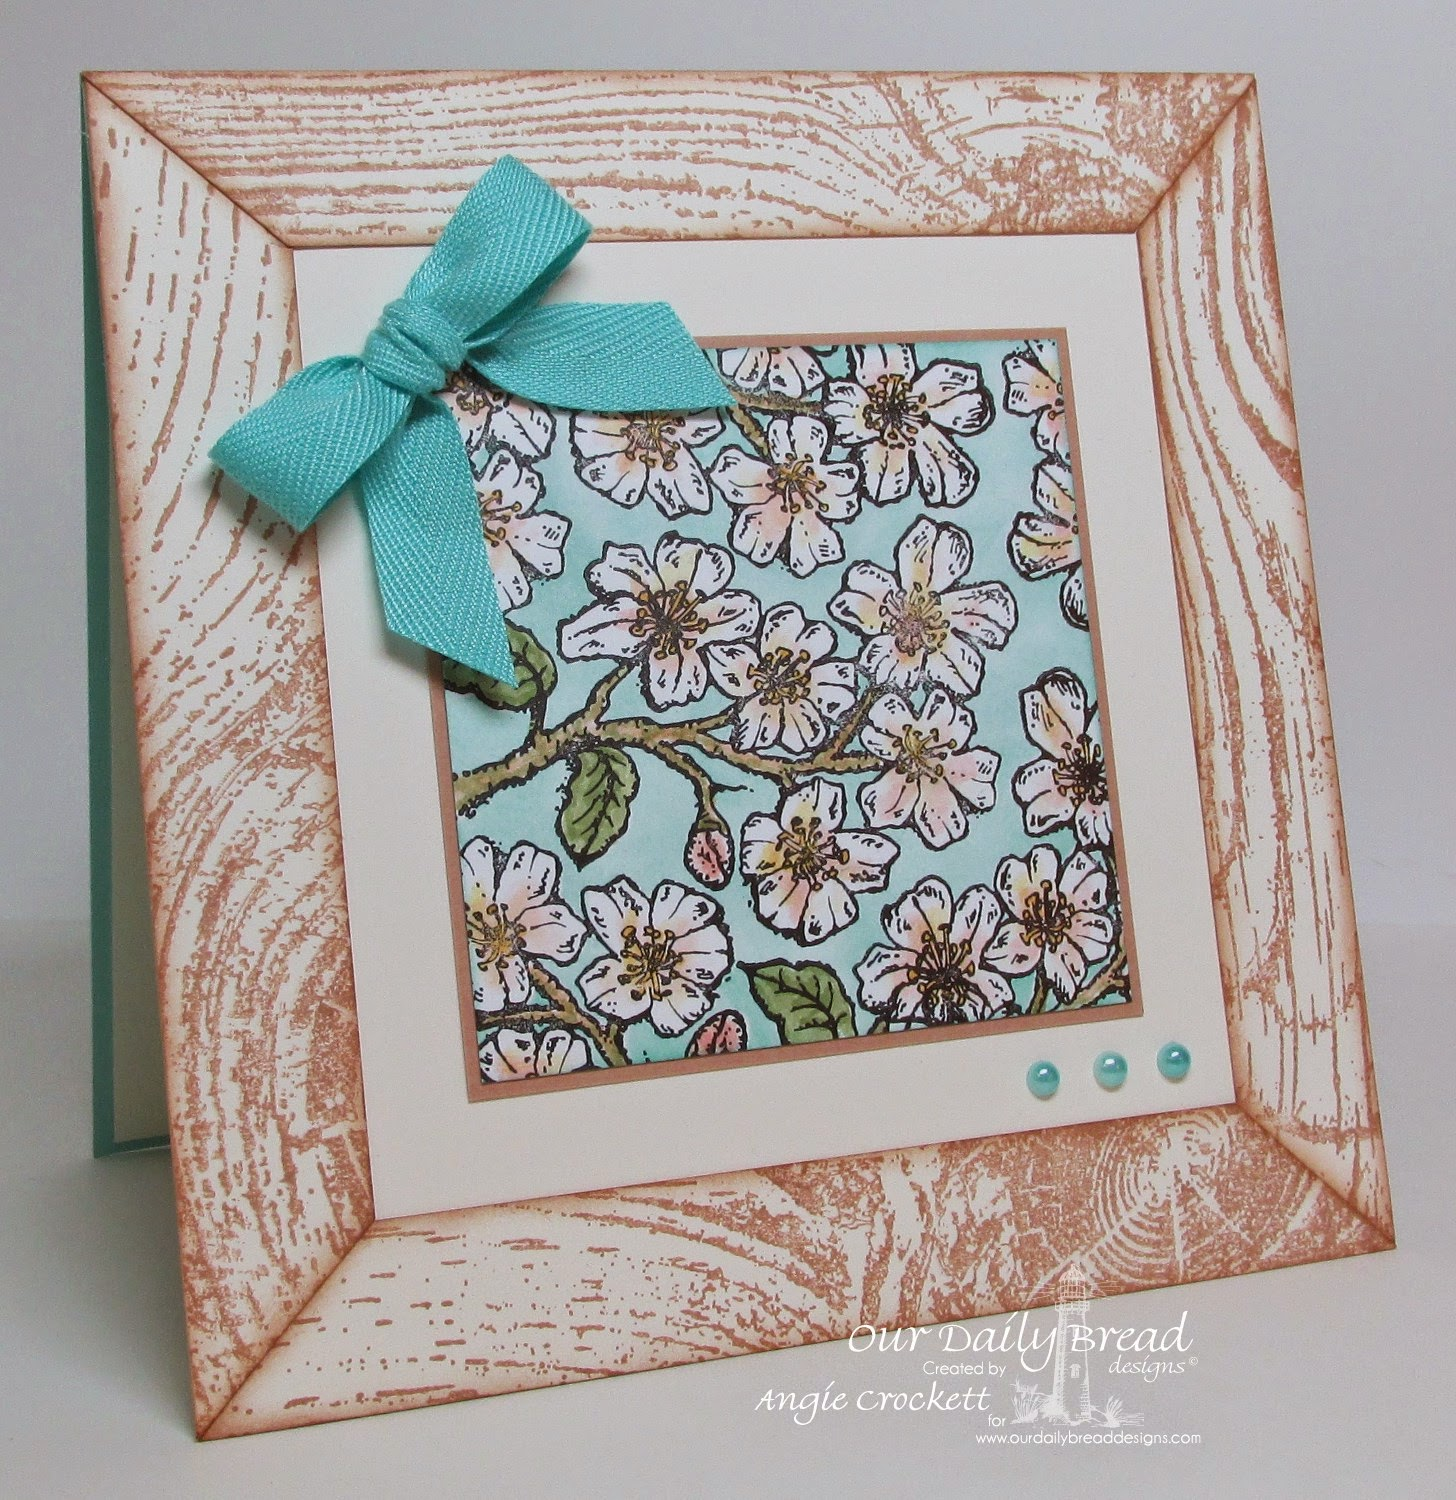 ODBD Wood Background and Cherry Blossom, Card Designer Angie Crockett